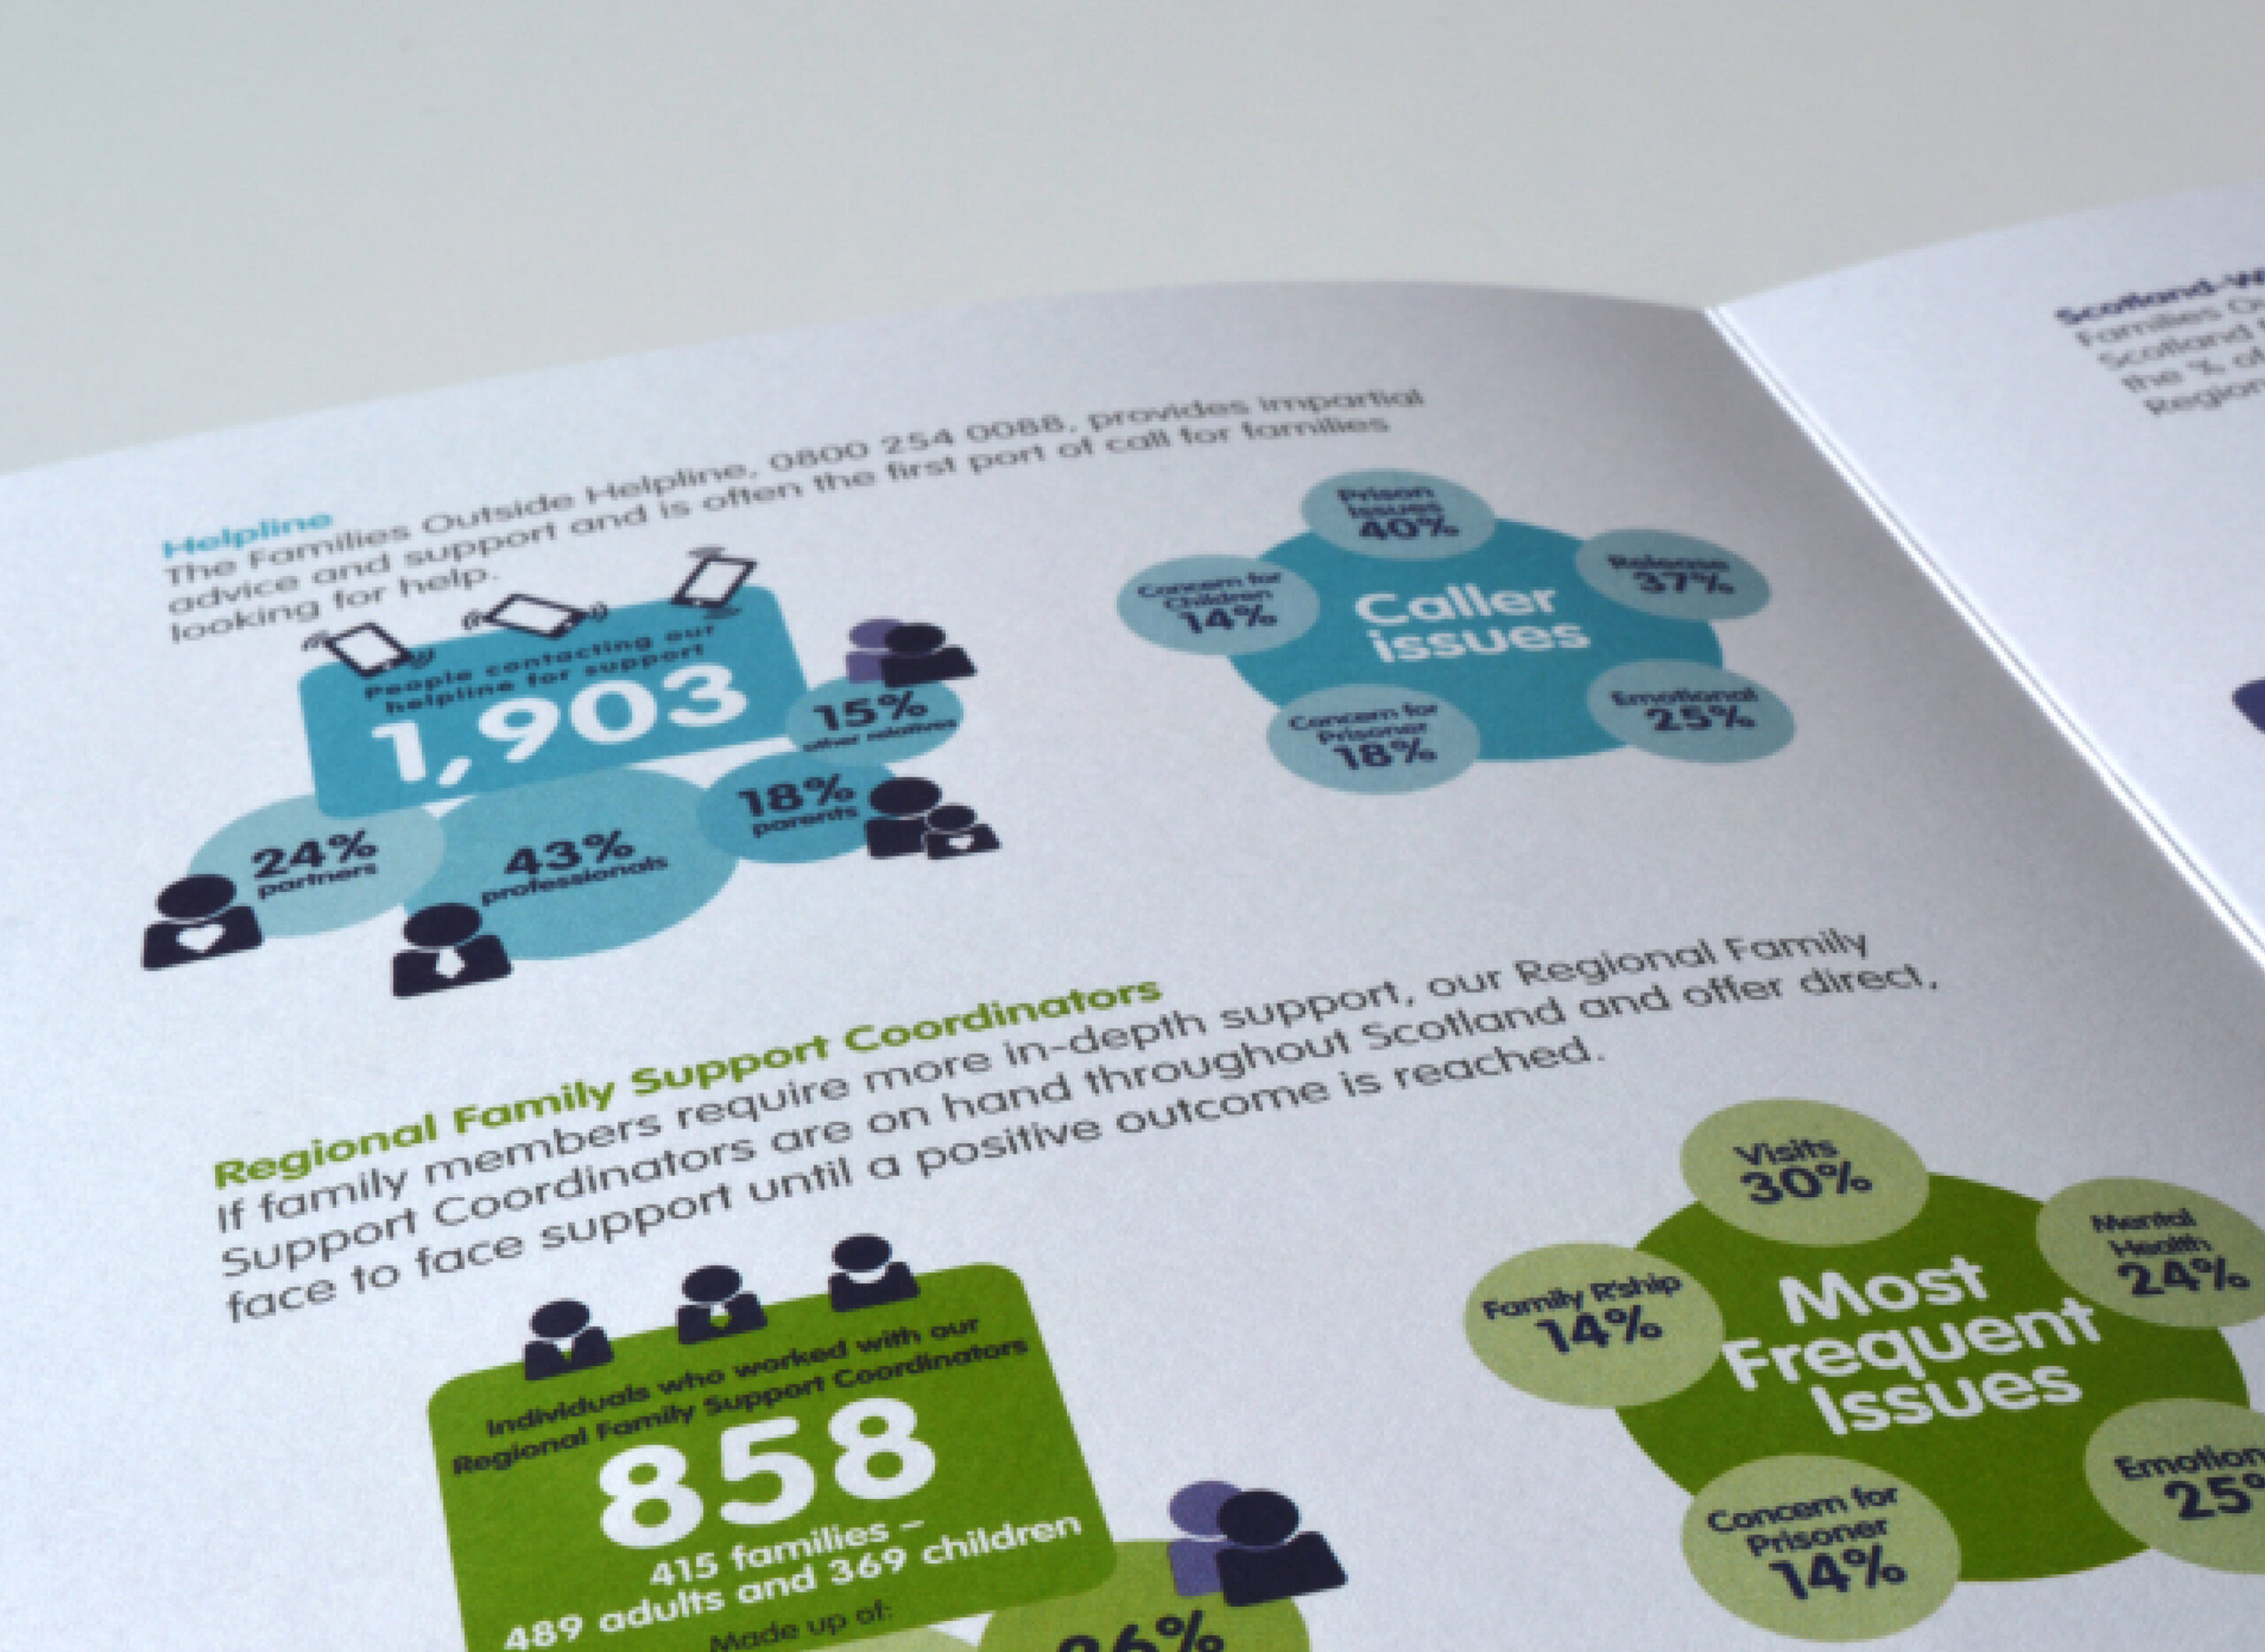 Annual Report with infographic style